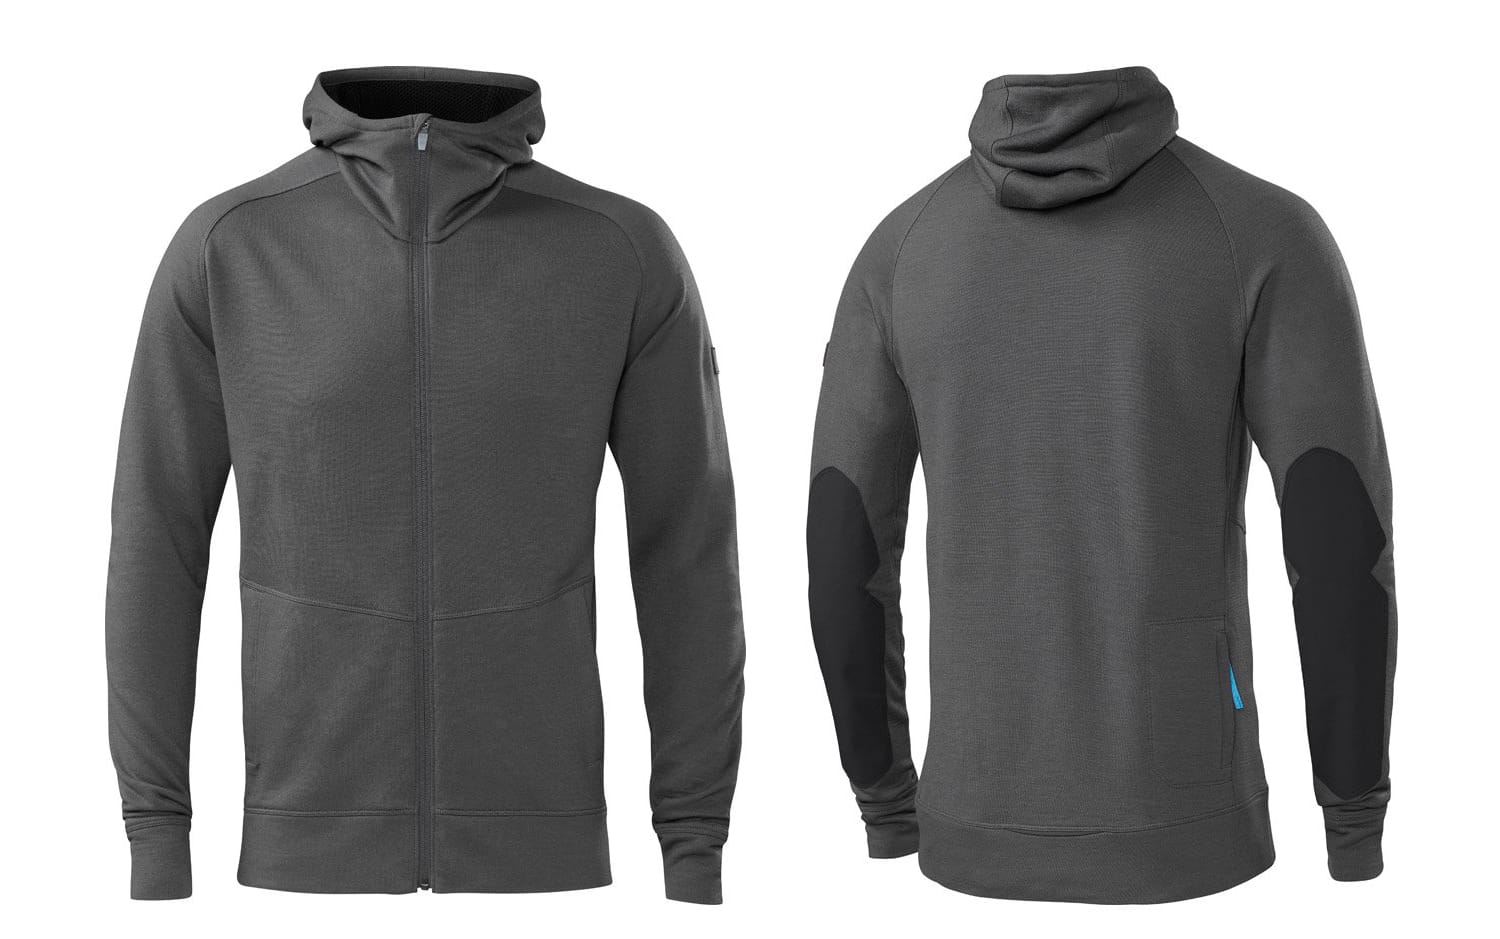 Best outdoor gear 2017: Kitsbow Merino AM hoodie